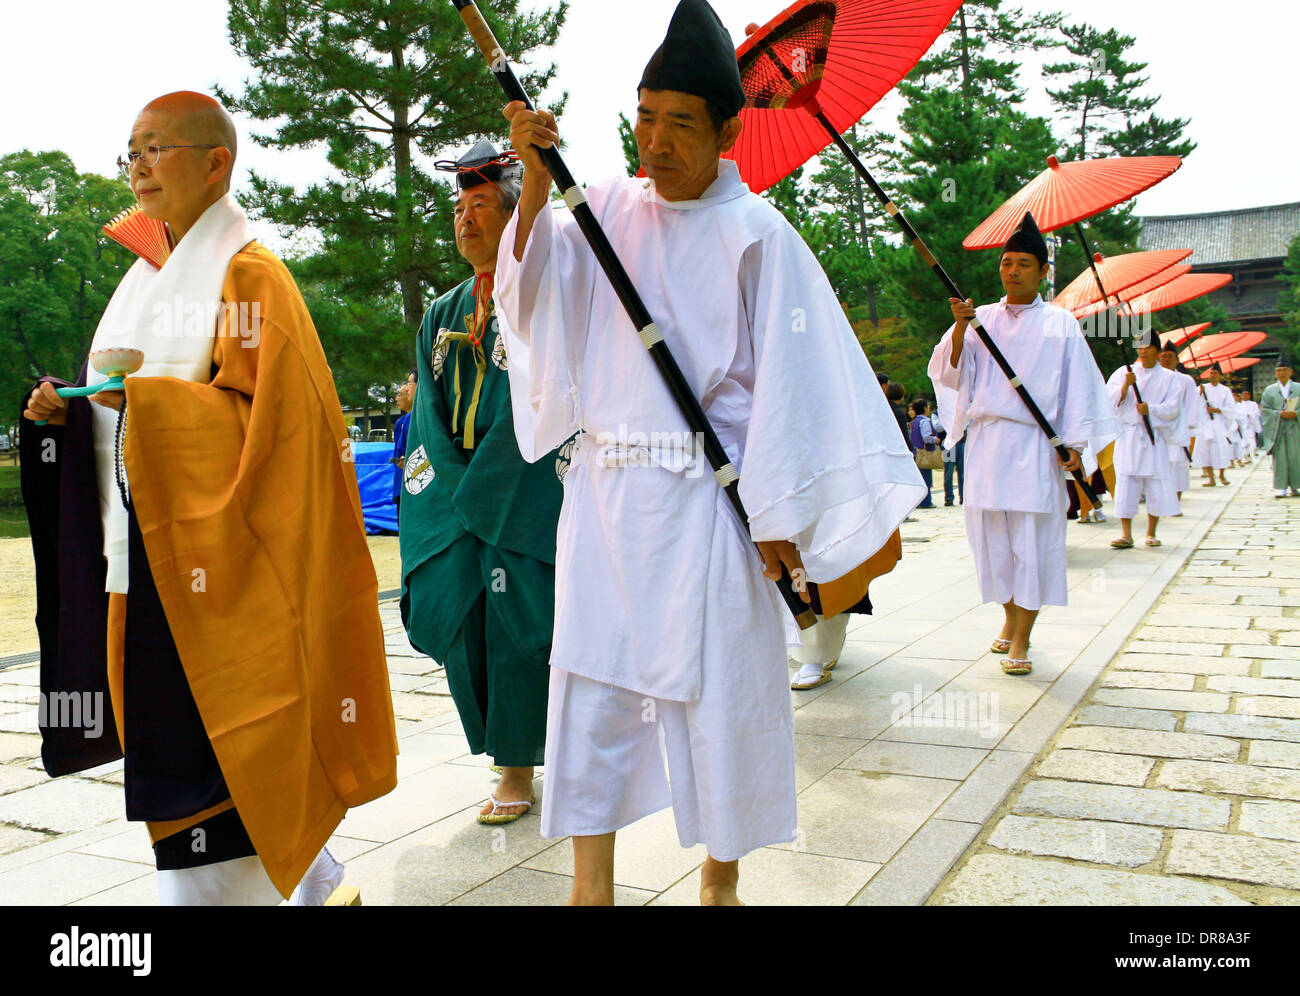 Shinto monks in Buddhist procession at Todaiji temple, Nara, Japan. - Stock Image